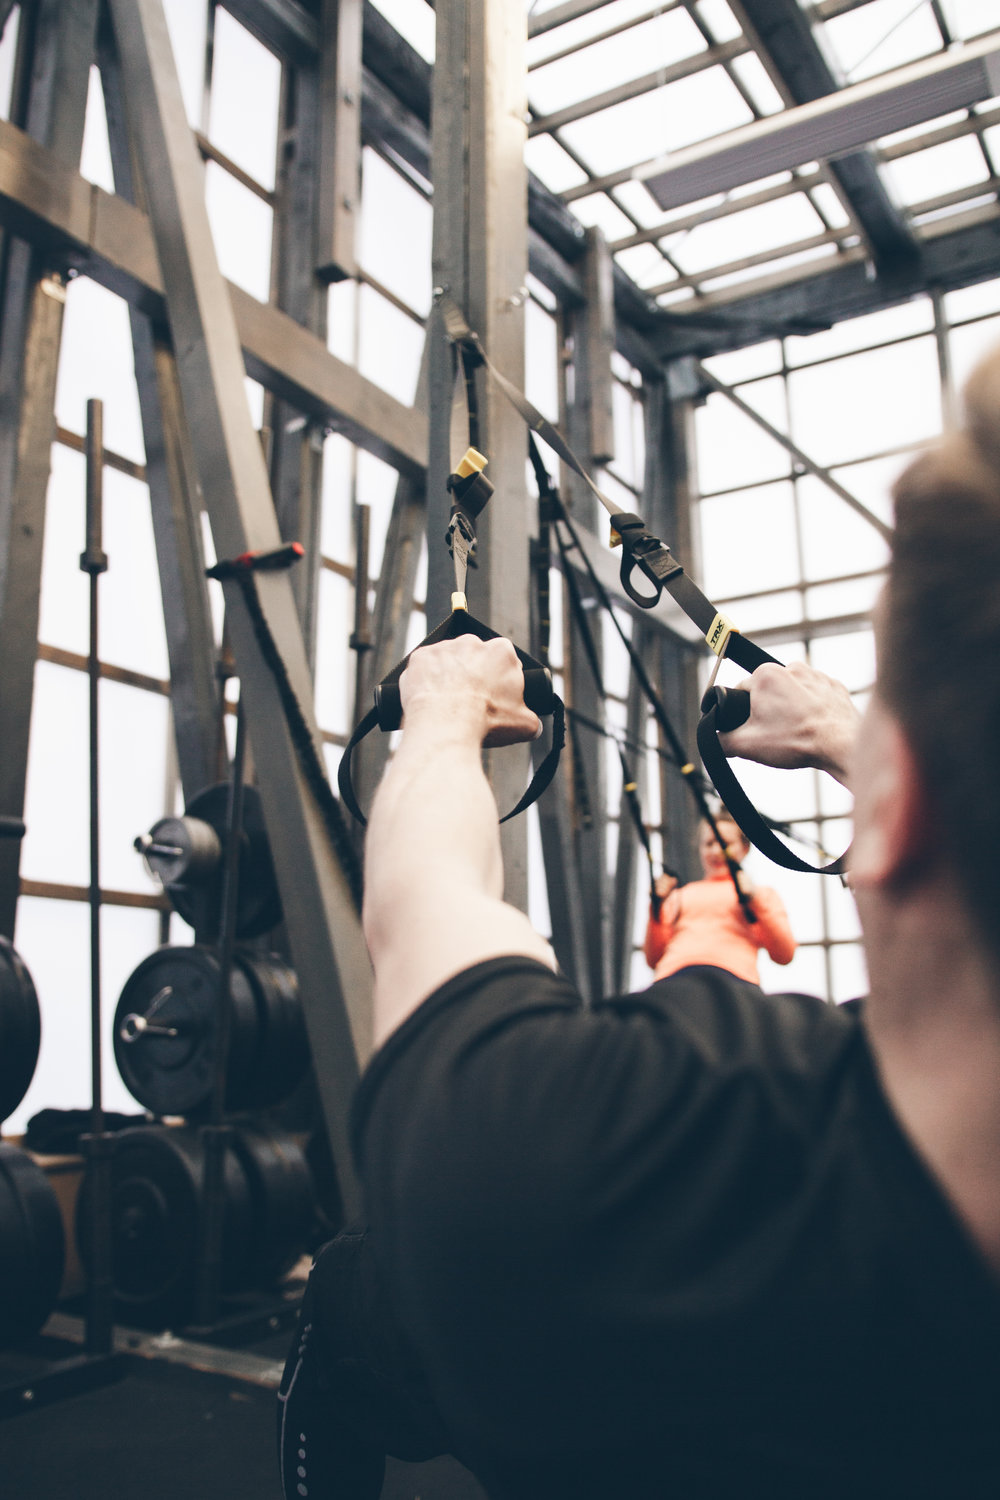 Girls and guys holding on to TRX straps pulling themselves up at adidas runbase Berlin